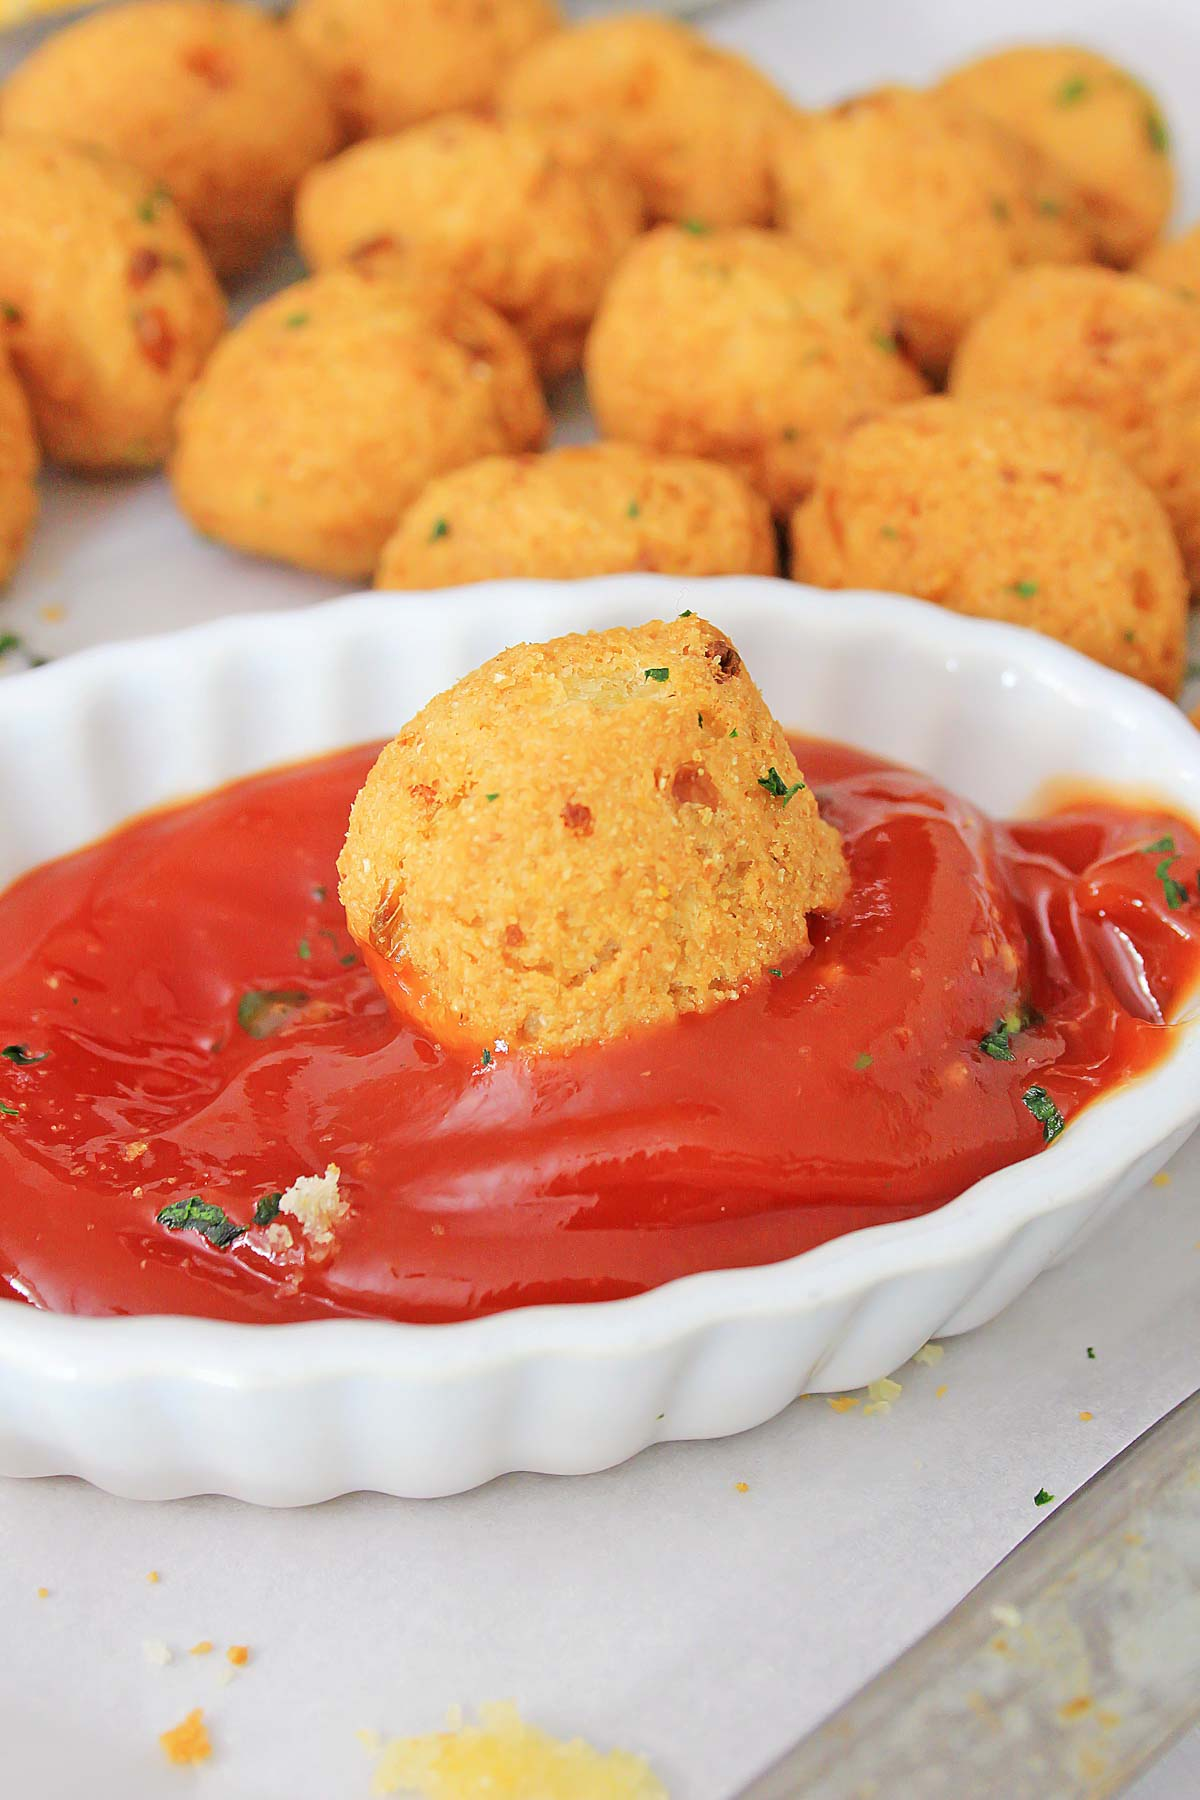 hush puppy dipped in a red sauce with the left over air fryer hush puppies in the background.